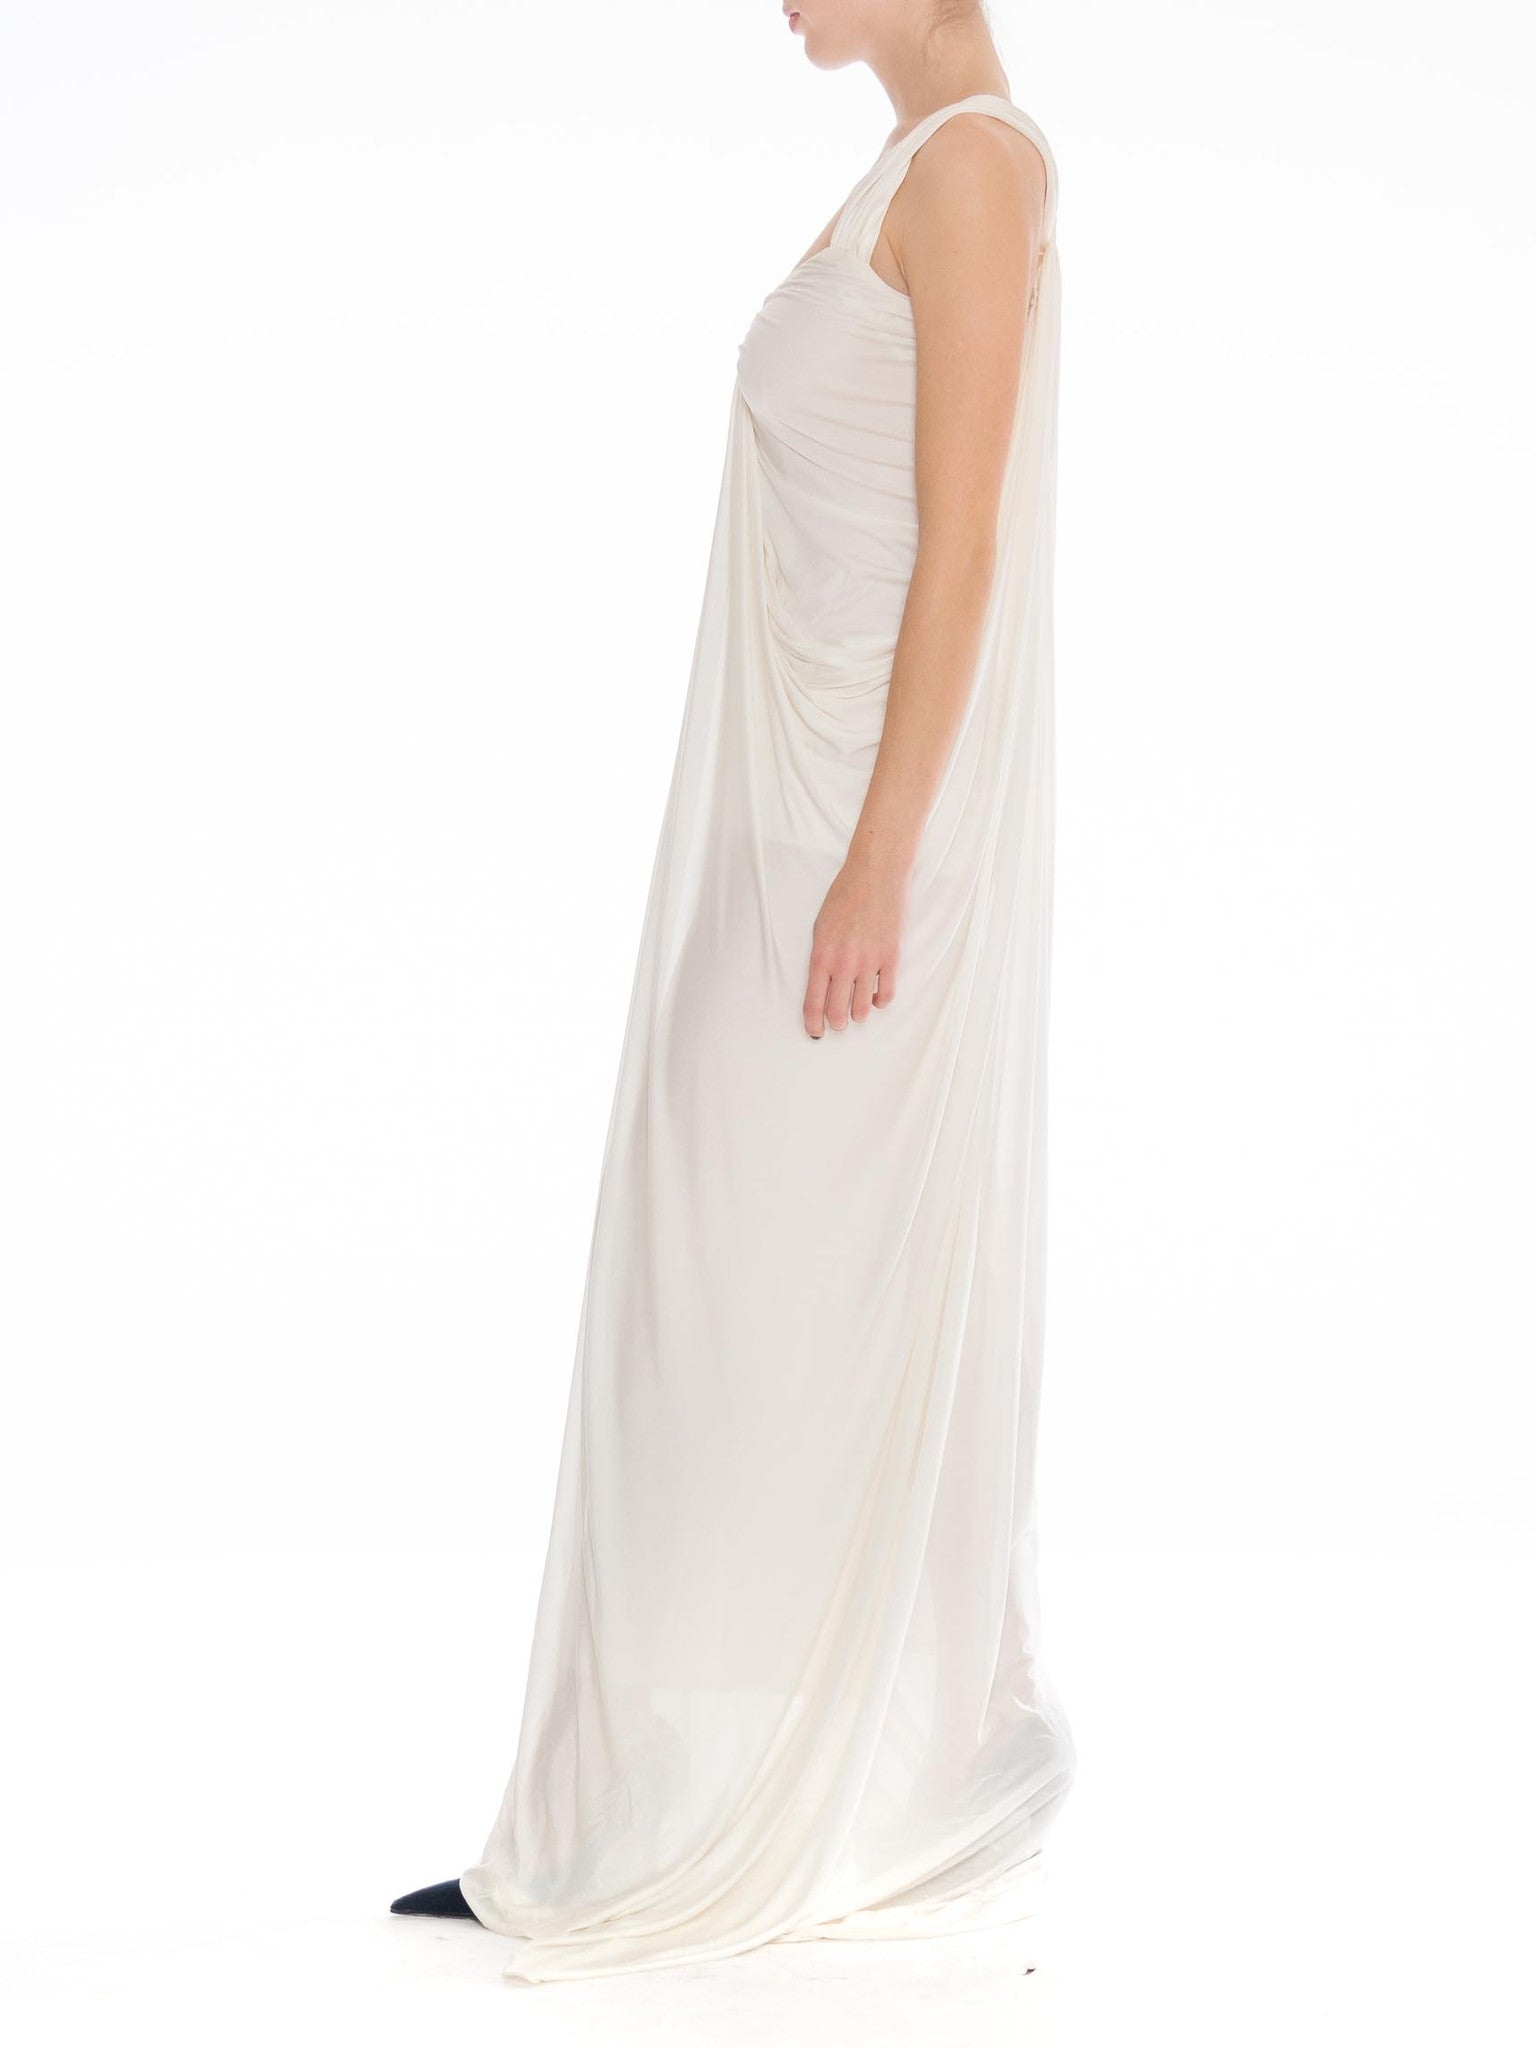 1900S DONNA KARAN Off White Rayon & Silk Jersey Draped Goddess Gown